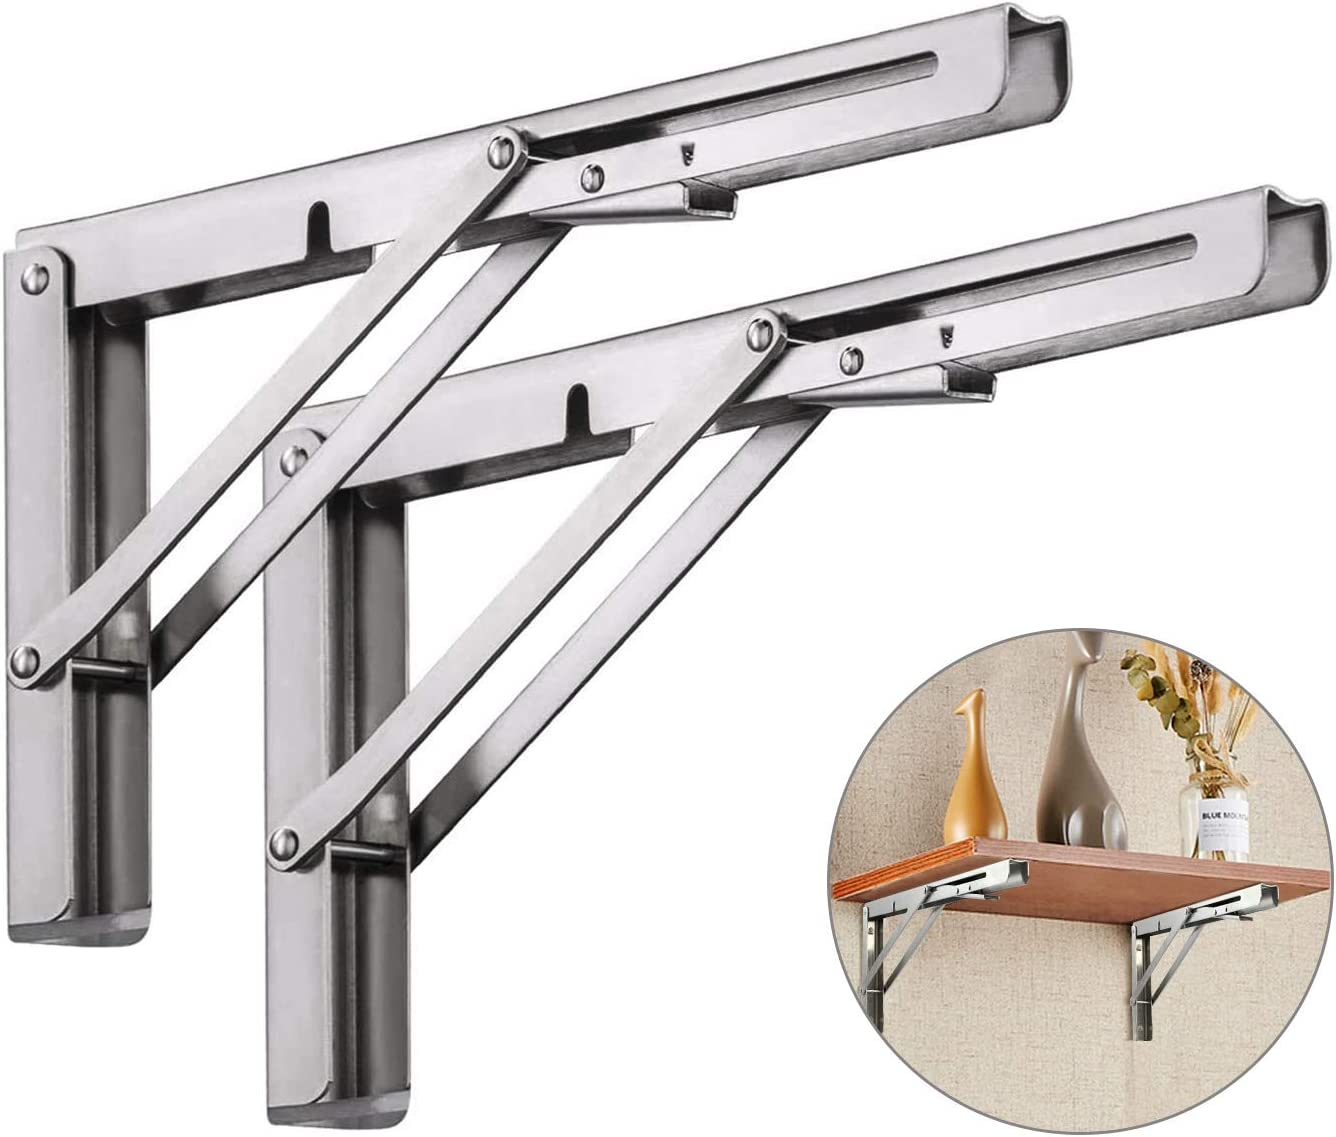 Folding Shelf Brackets 8 Inch,Heavy Duty Stainless Steel Foldable Wall Mount Shelf-Bracket, Suitable for DIY Various Space-Saving Work Bench with Install Screws. Pack of 2